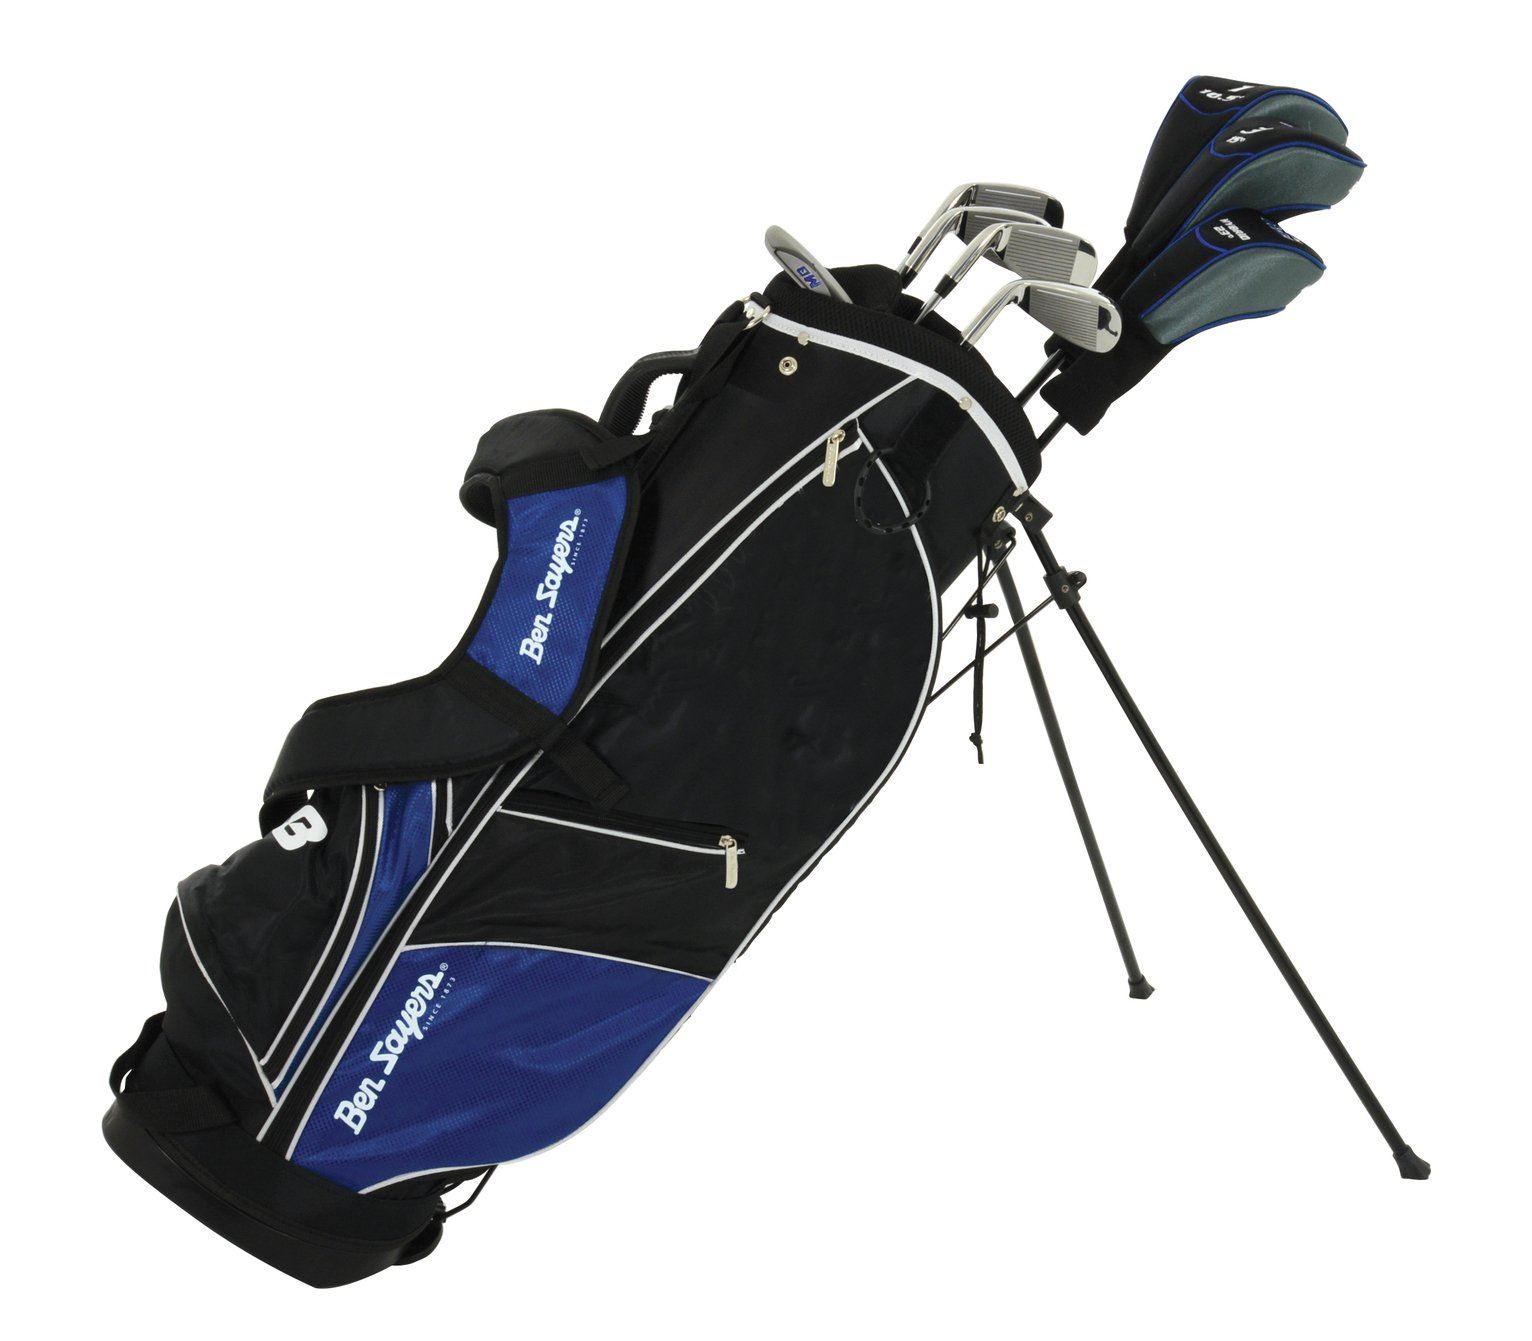 Ben Sayers M8 8 Golf Club Set and Stand Bag - Blue